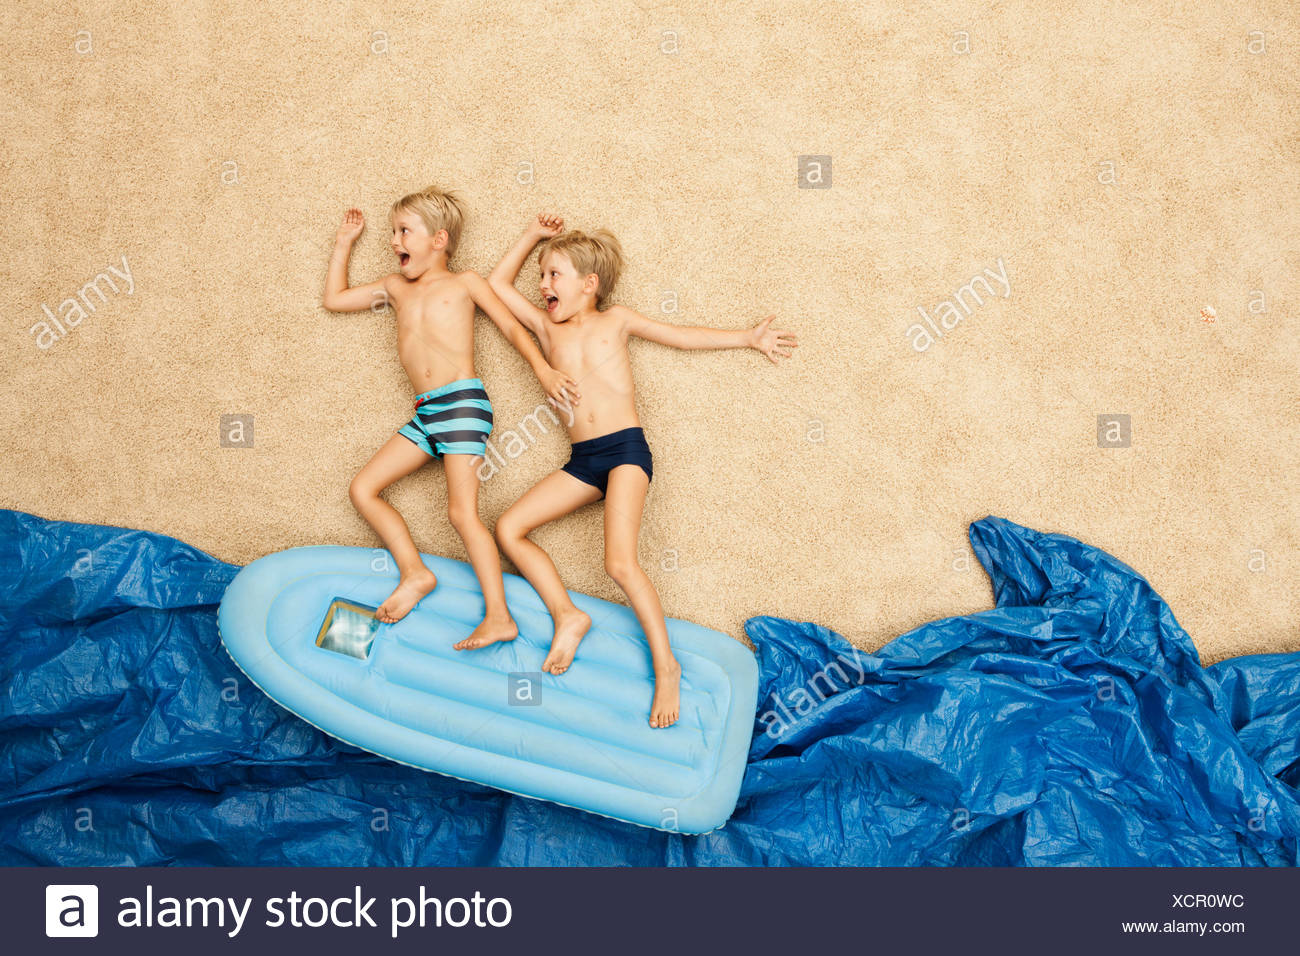 Germany, Boys on inflatable raft in water at beach - Stock Image